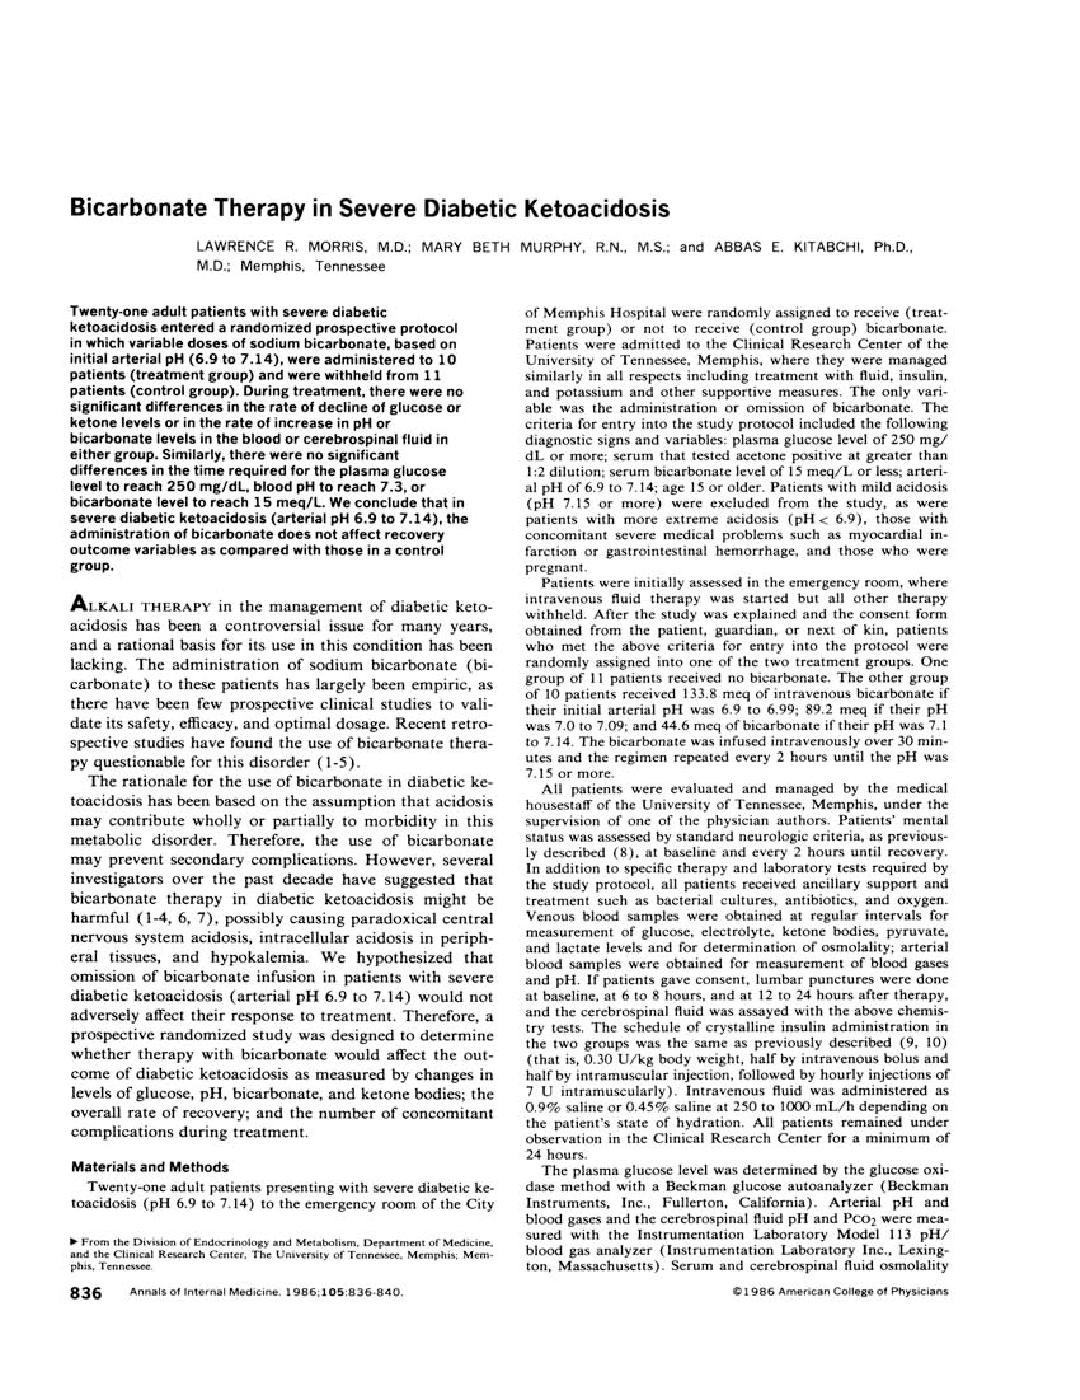 Bicarbonate Therapy In Severe Diabetic Ketoacidosis